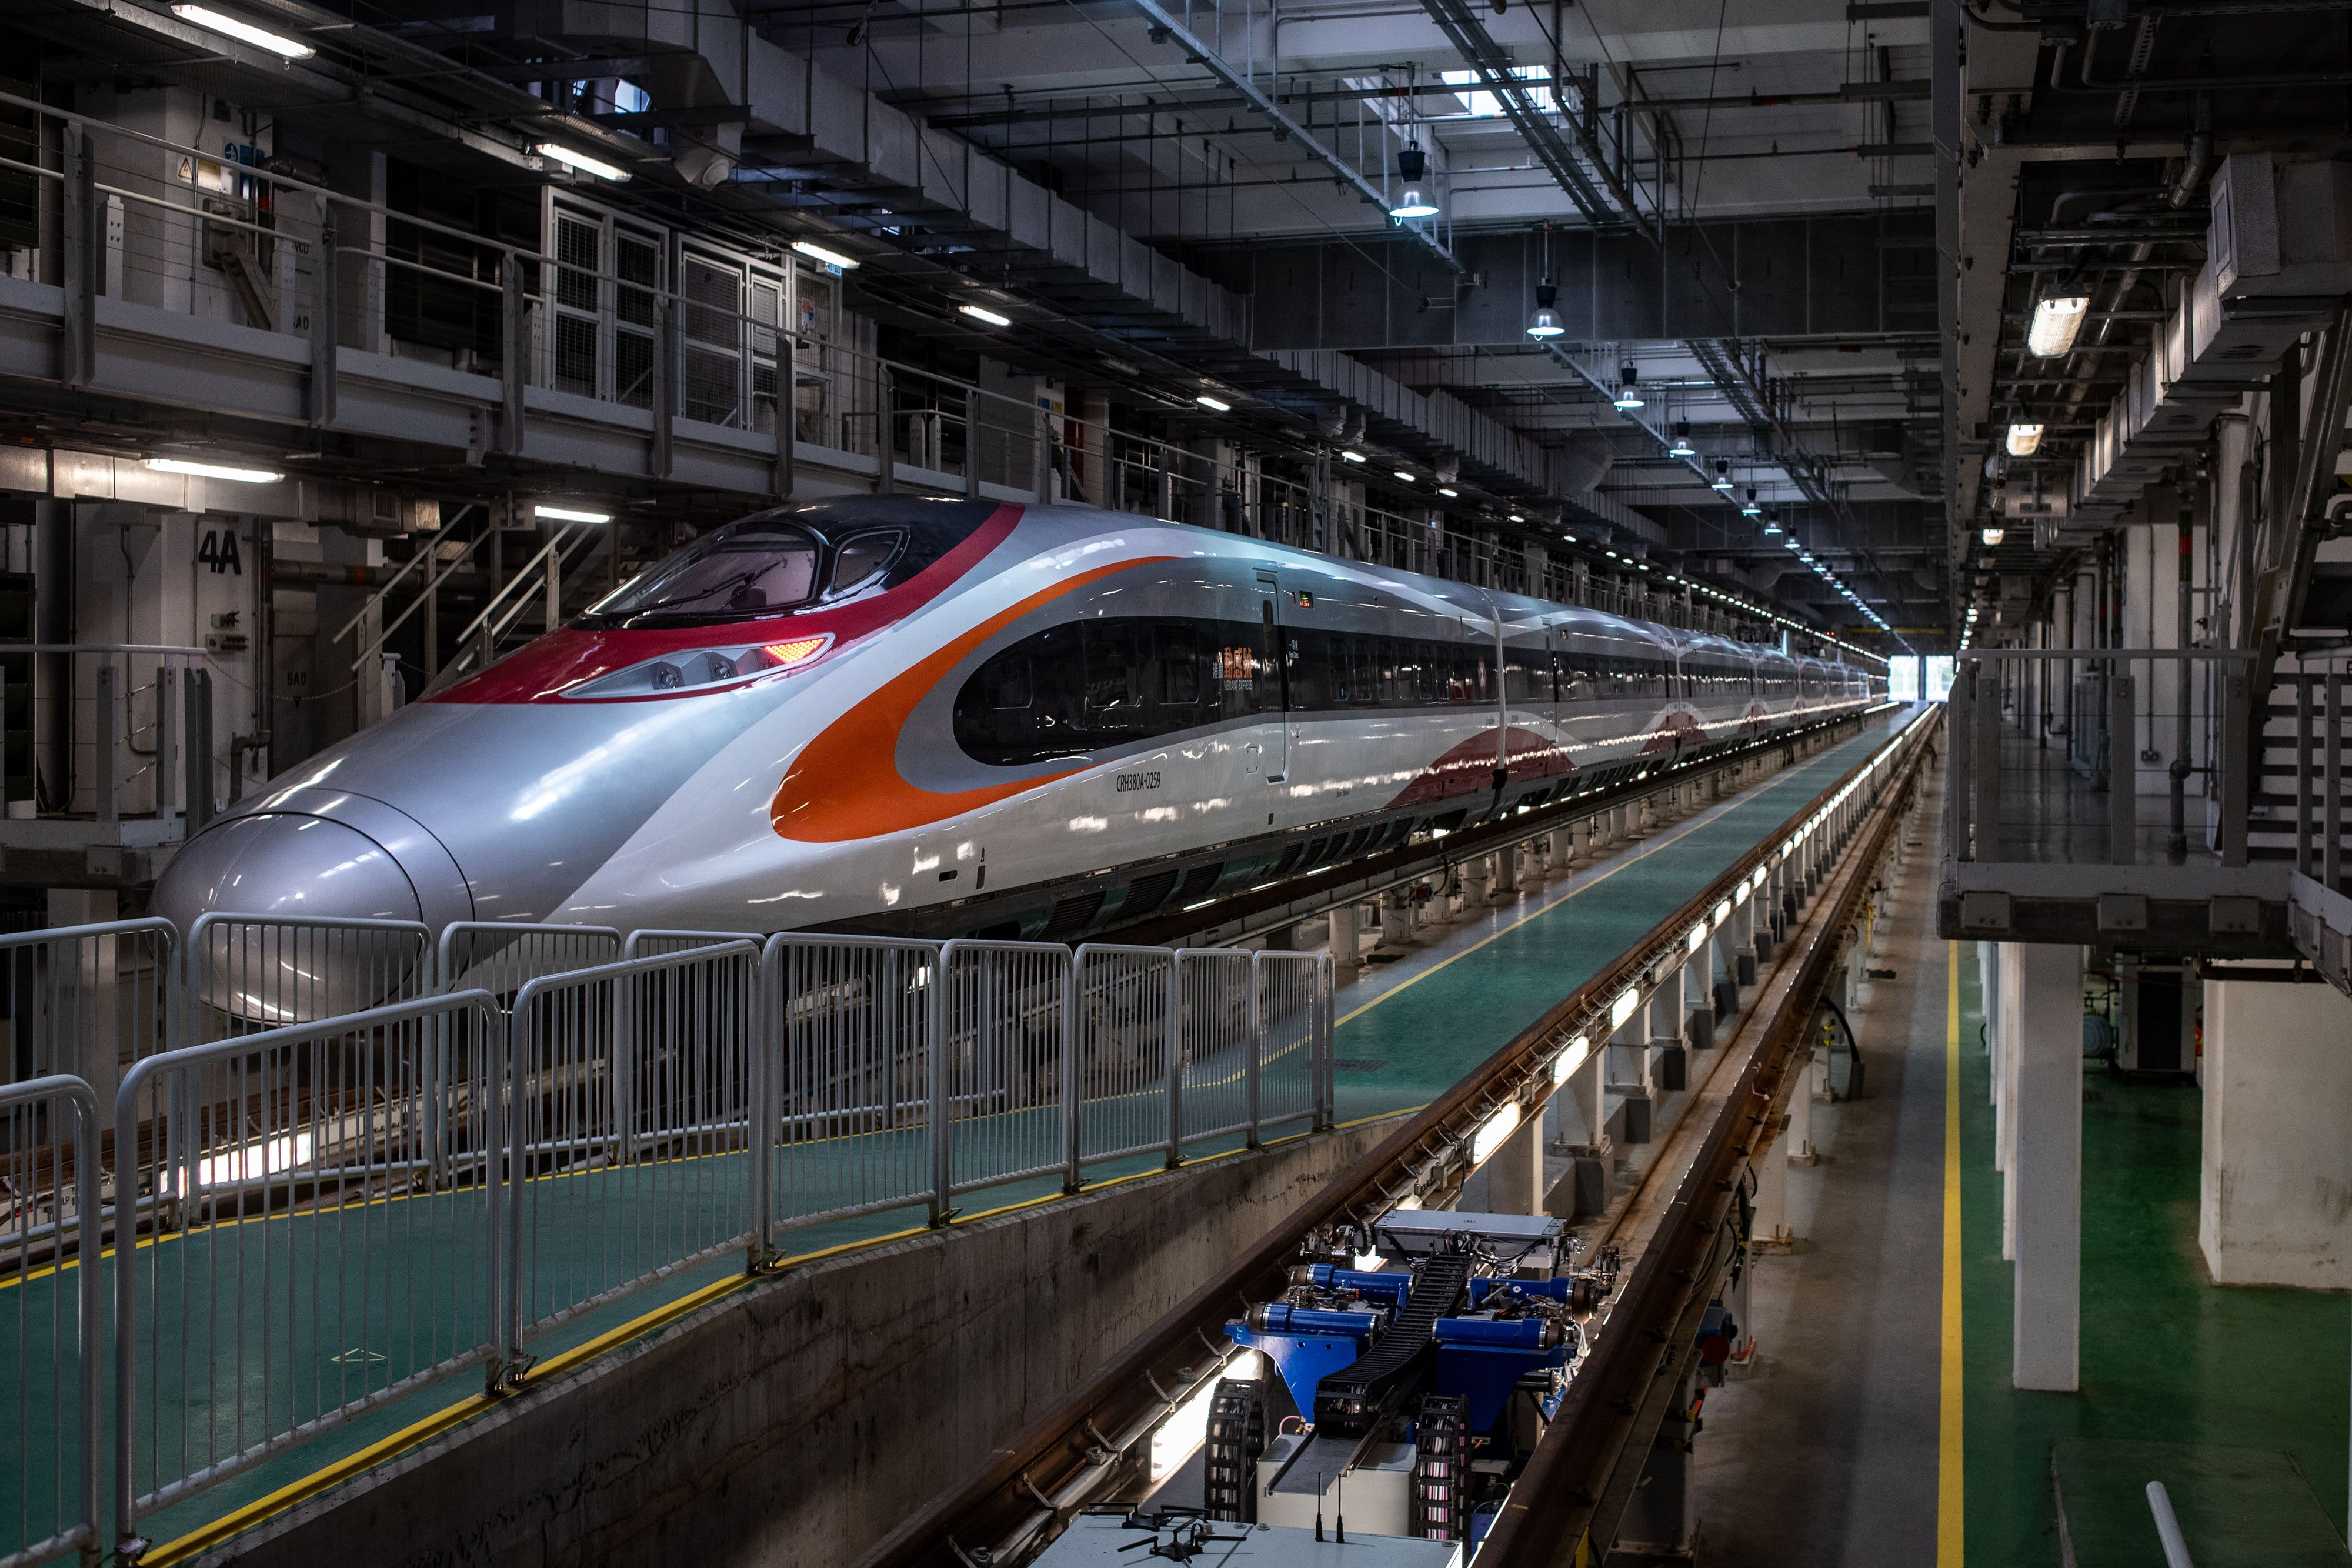 High-speed rail: Train to China brings benefits, worries to Hong Kong